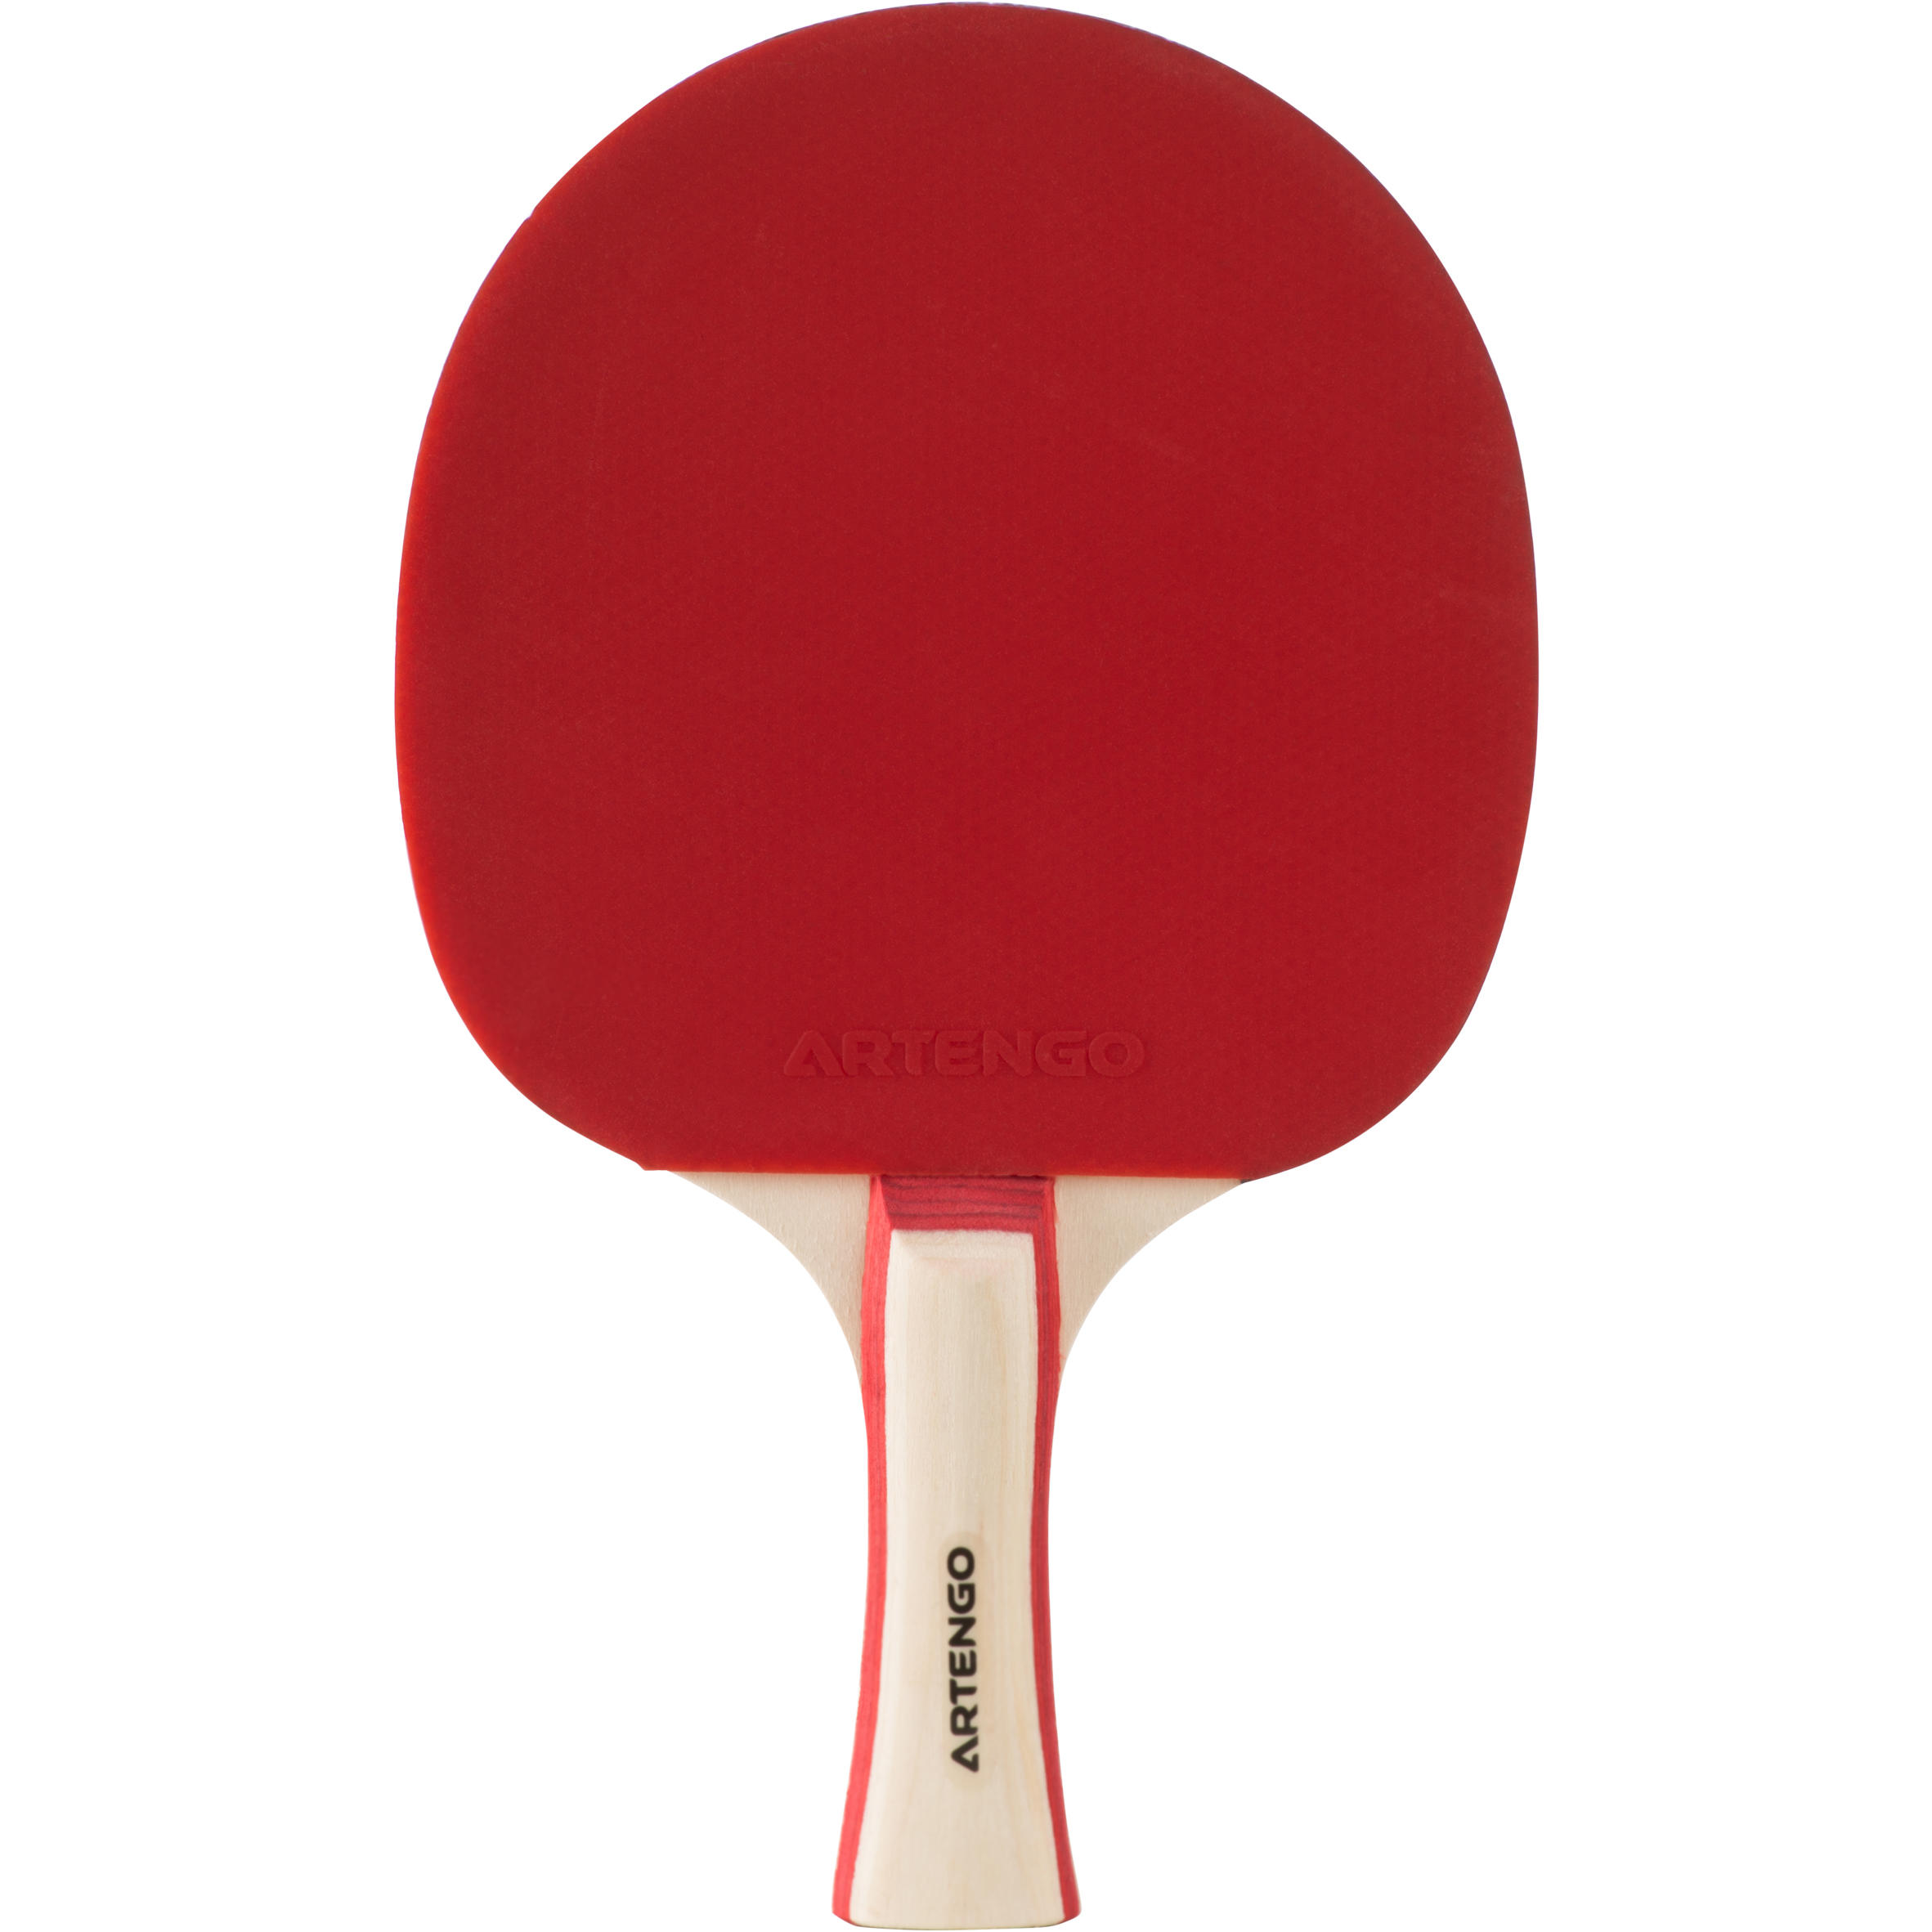 FR130 2* Table Tennis Racket